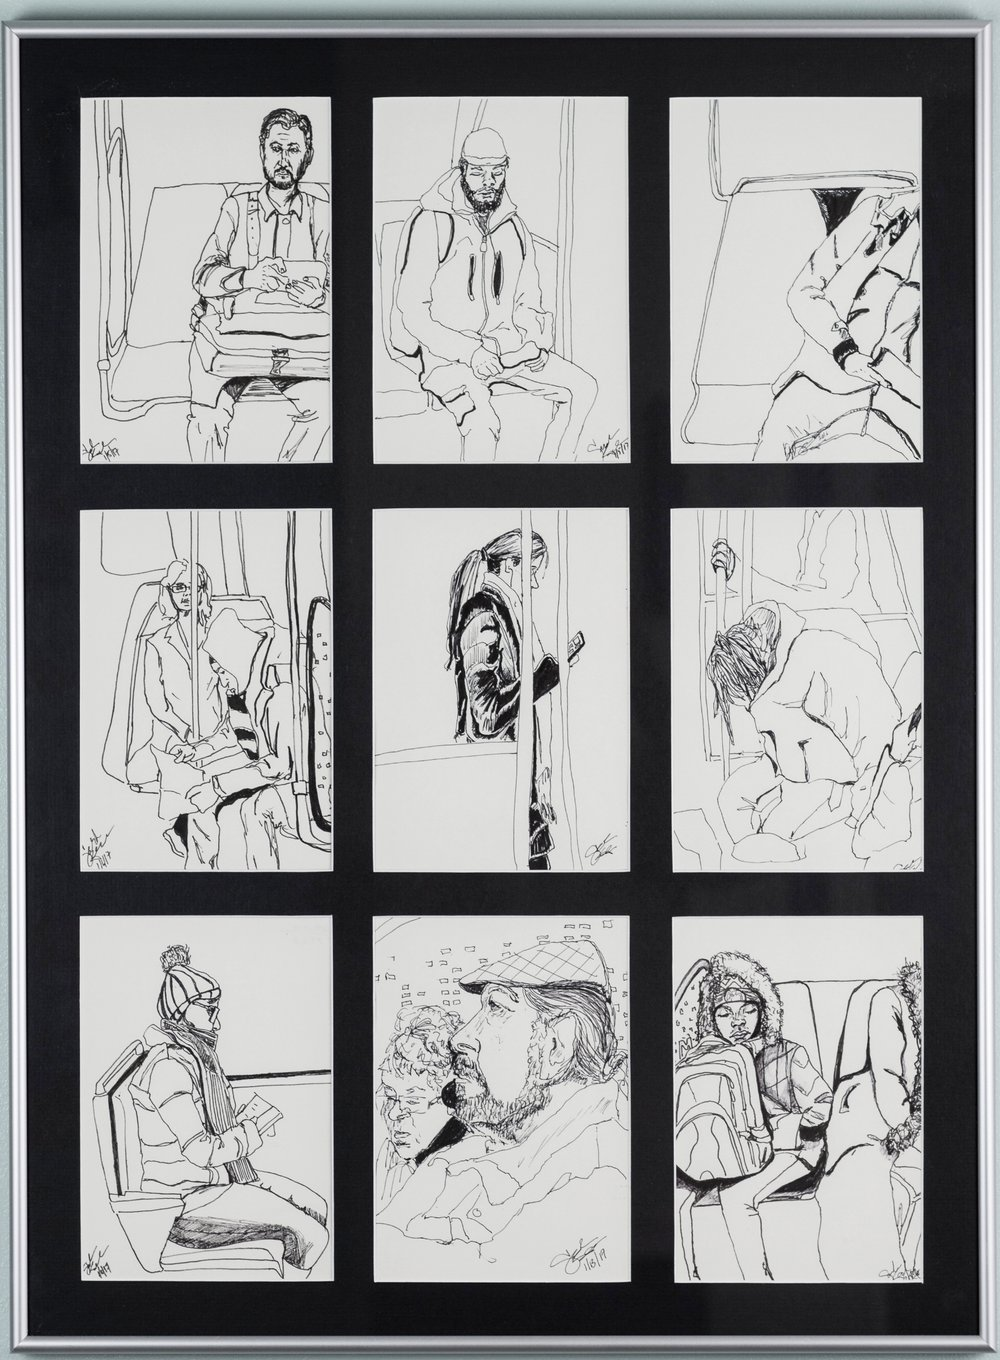 Framed Metro Sketch Set of 9